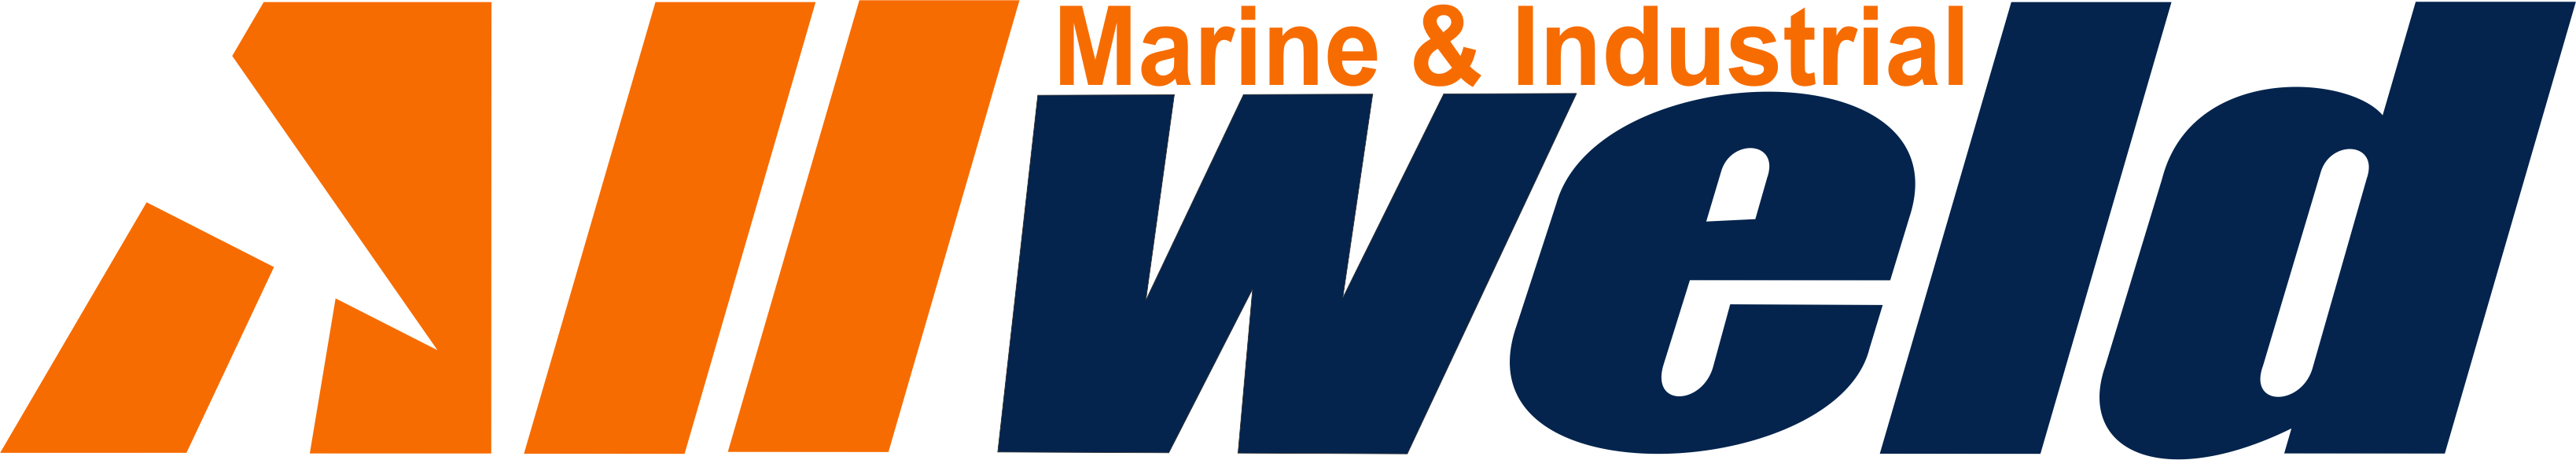 Welding clipart marine engineer. Allweld about us the